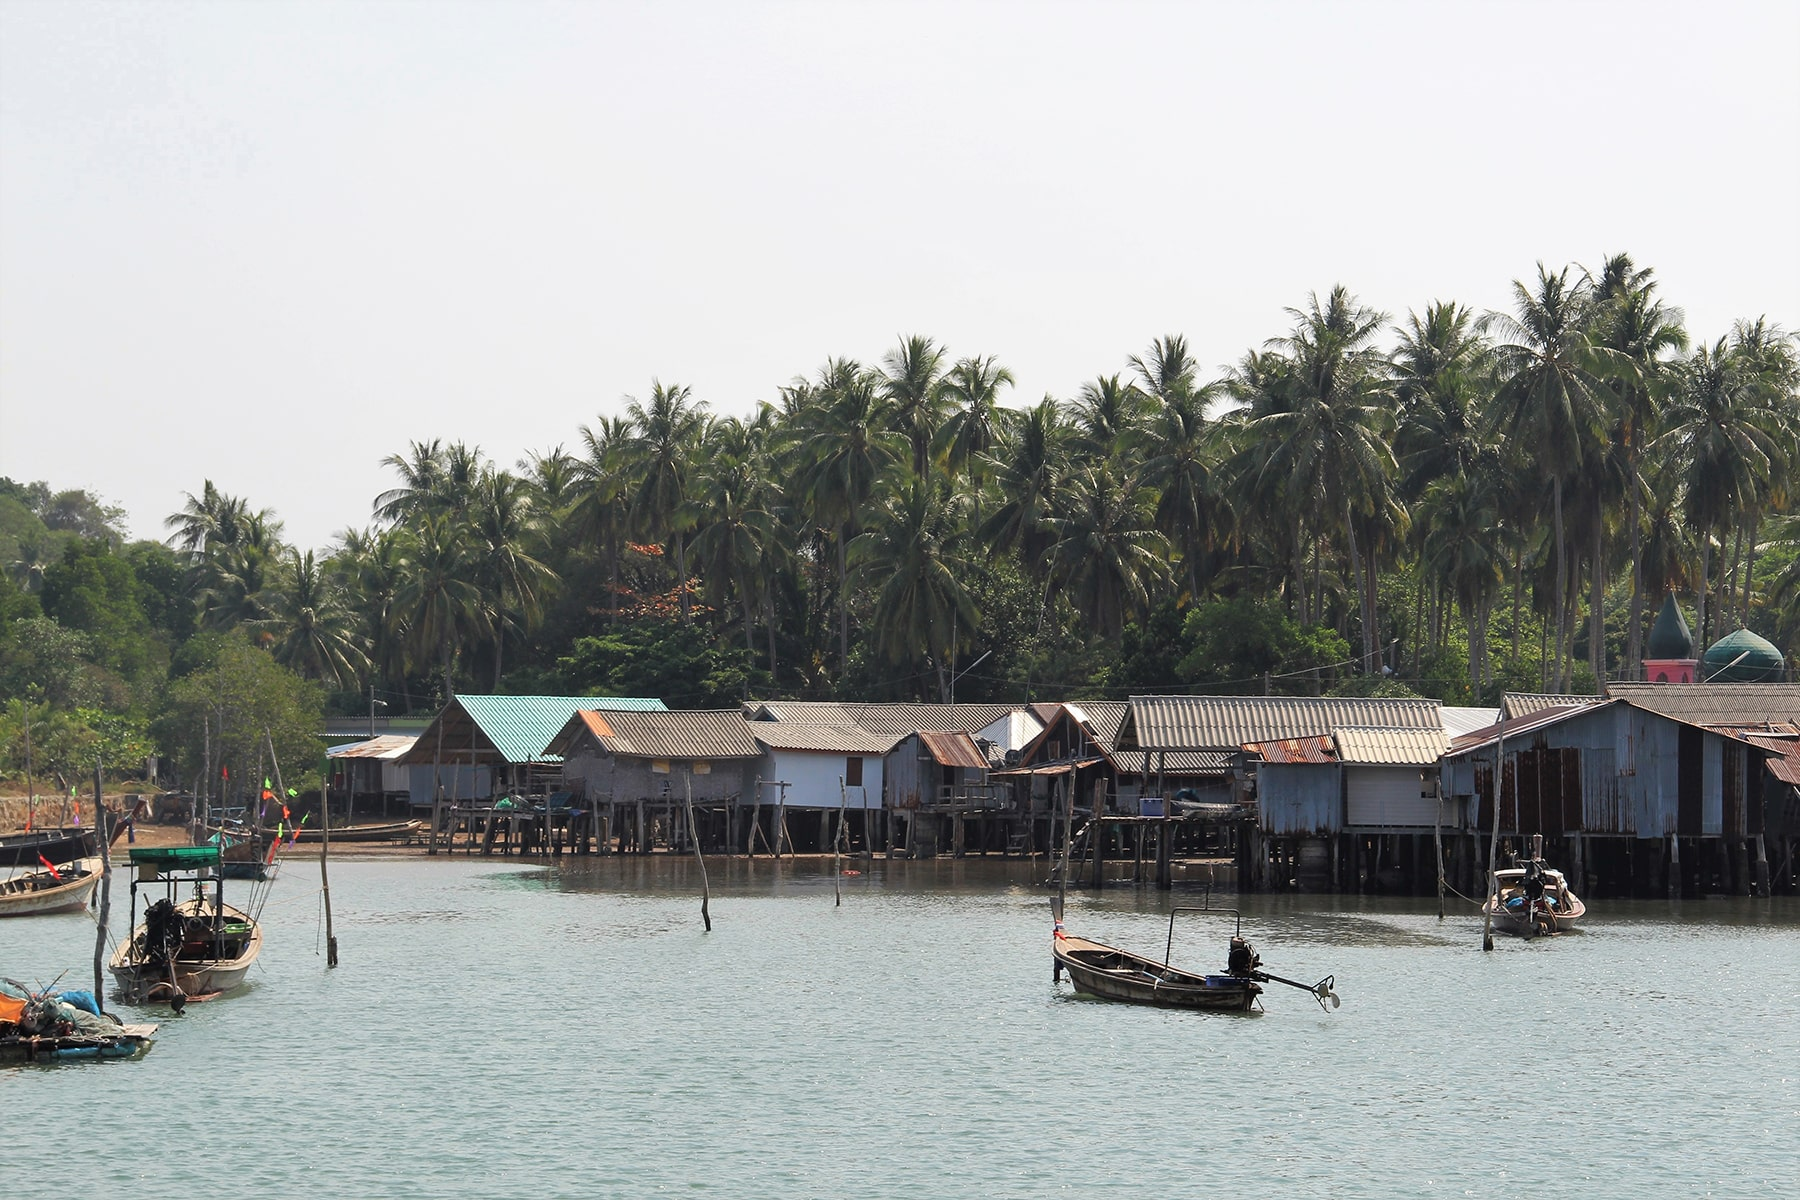 Stilt houses in the fishermen's village in Koh Yao Yai